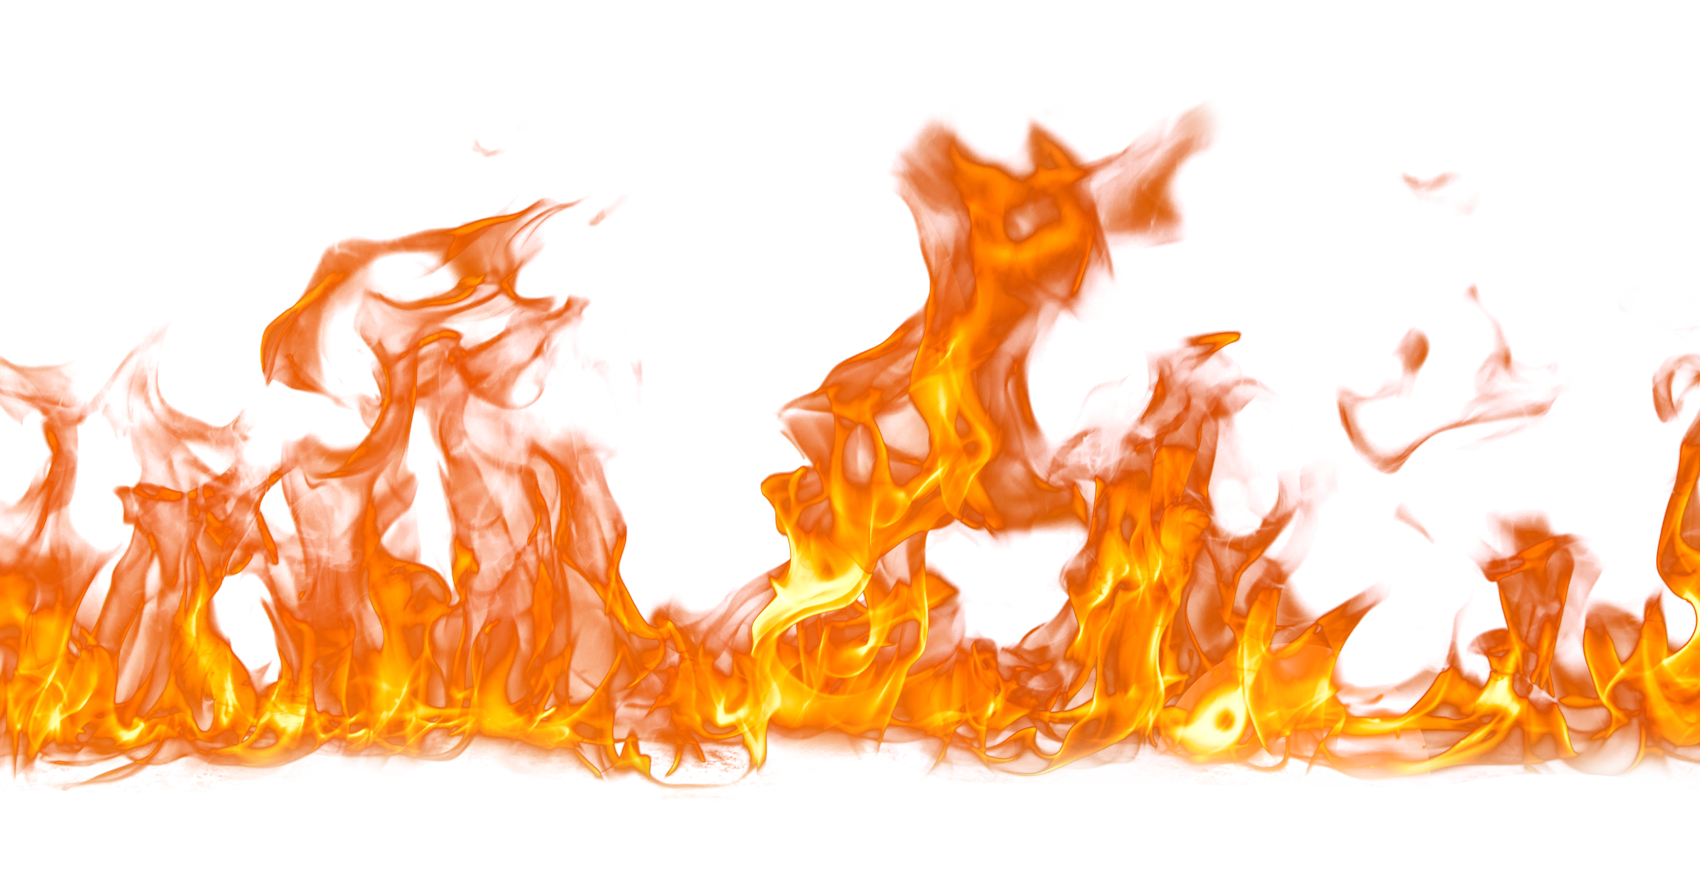 Fire PNG Transparent Images | PNG All - Fire PNG Gif